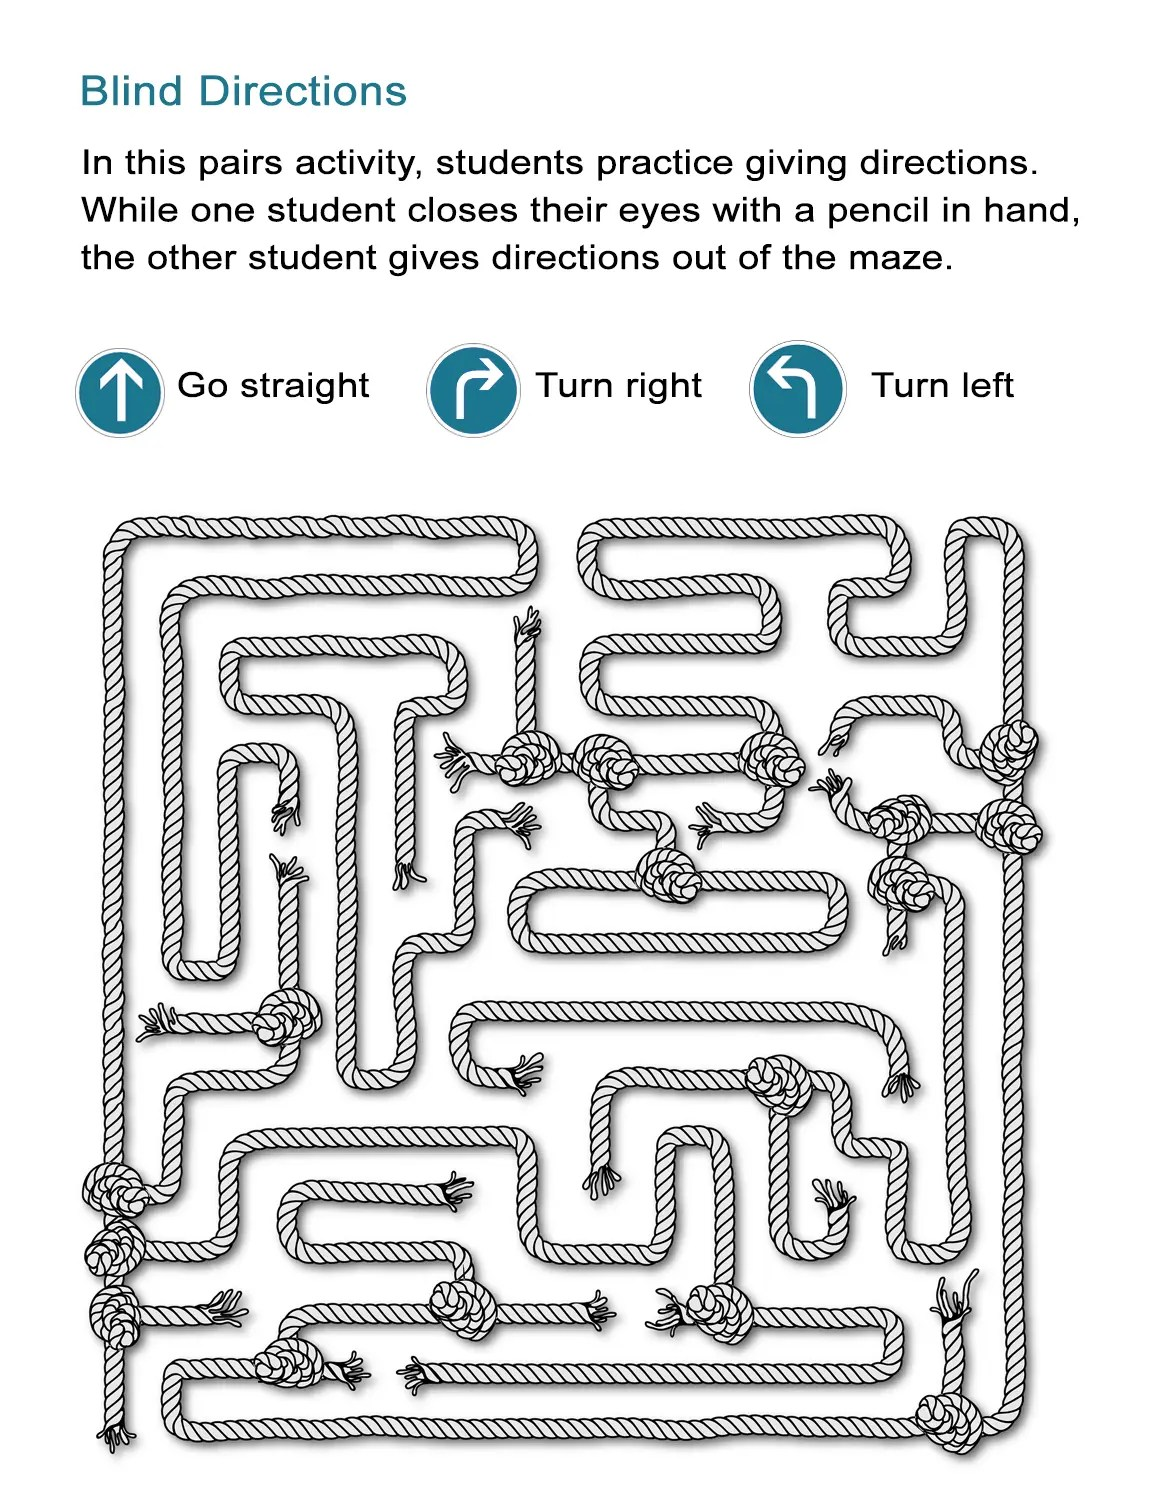 Maze Directions Worksheet Can You Advance Through The